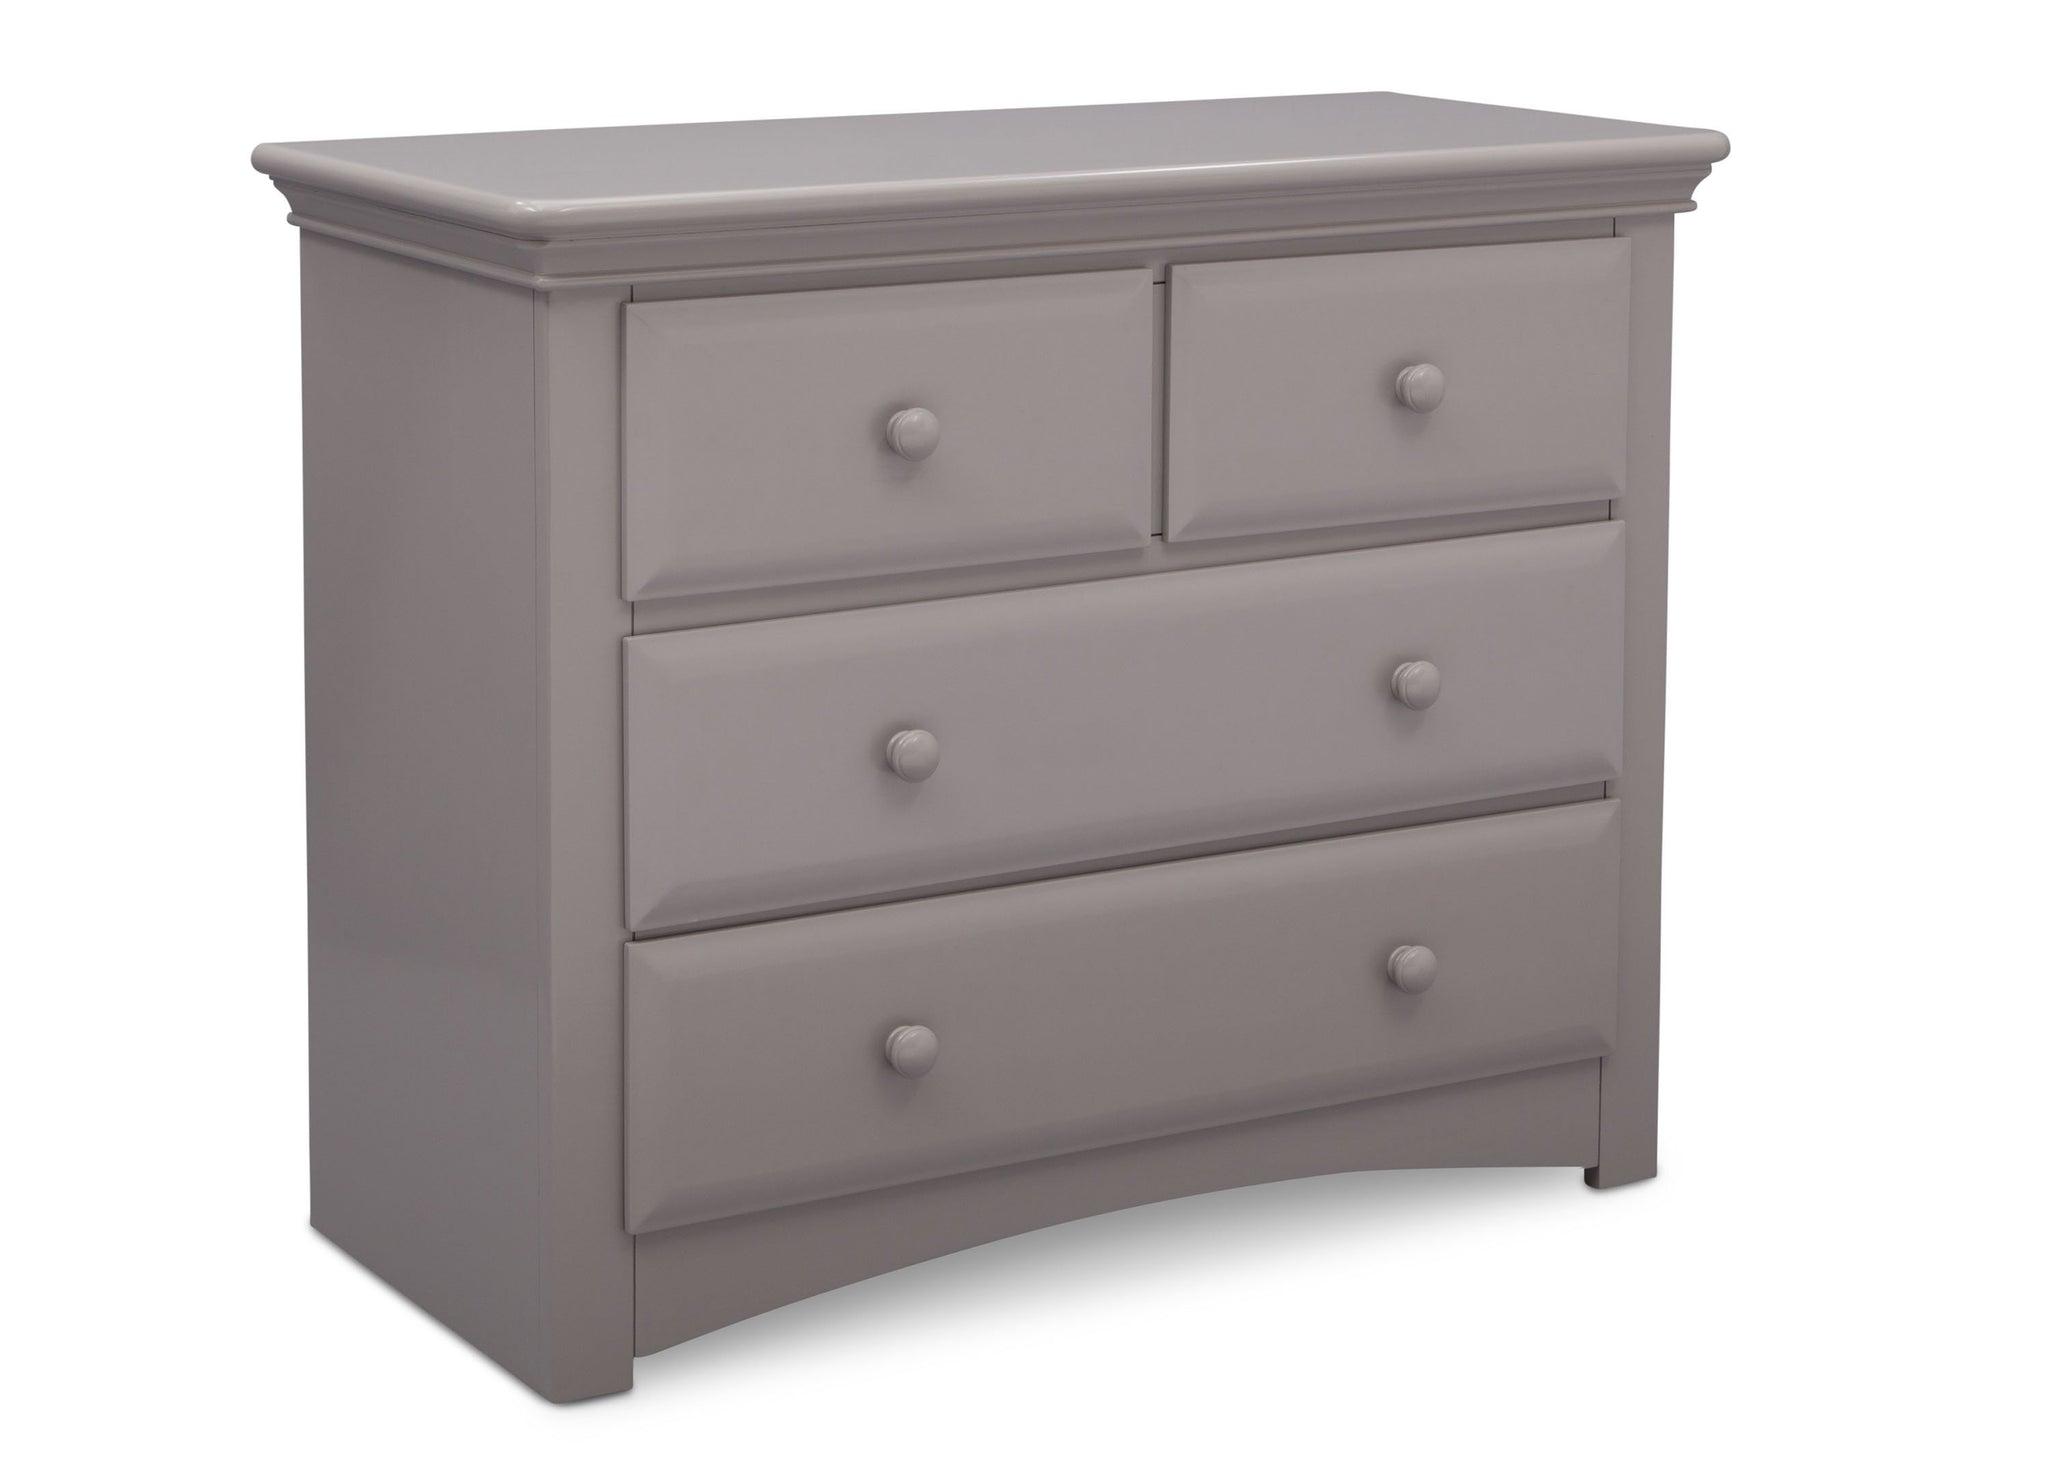 Serta Grey (026) Park Ridge 4 Drawer Dresser (702640), Right Angle, a3a